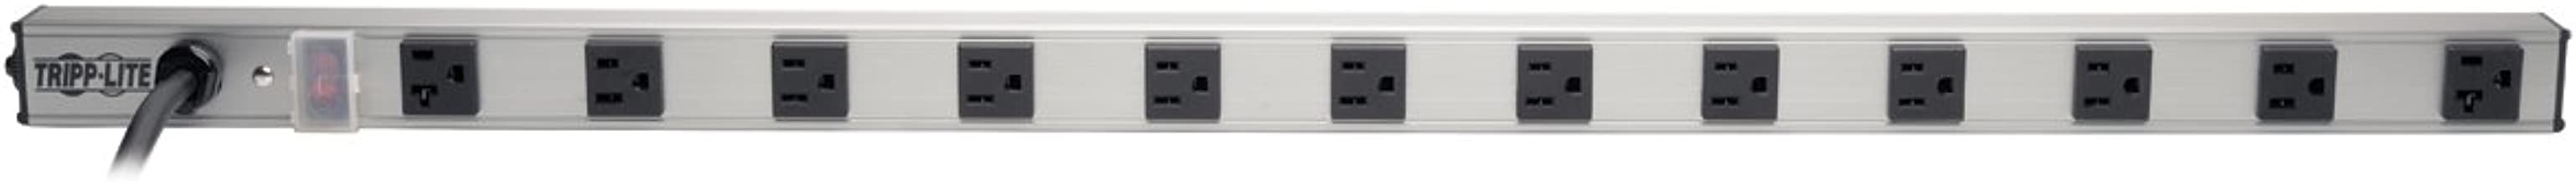 Tripp Lite 12 Outlet Surge Protector Power Strip, 15ft Long Cord, Metal, (SS361220)